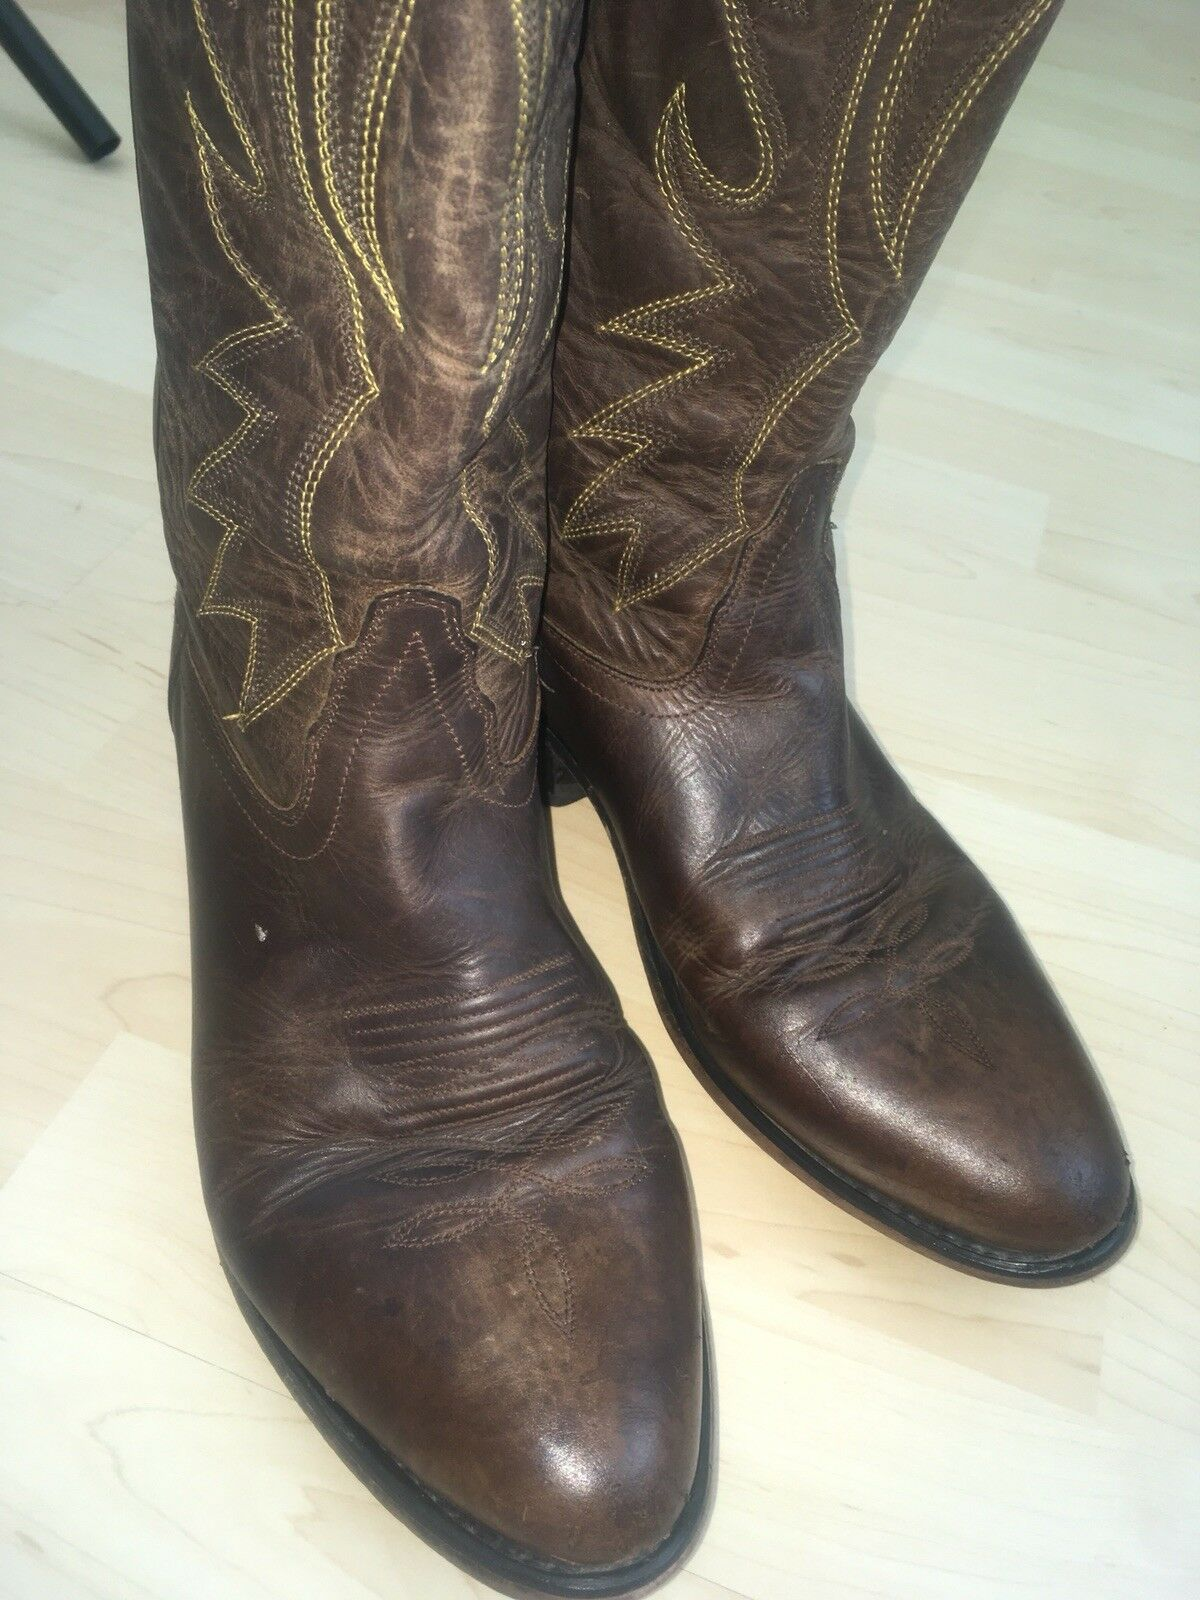 Old West Men's Size 9-9.5 (Approx.) Brown Leather Cowboy Boots OW 2051